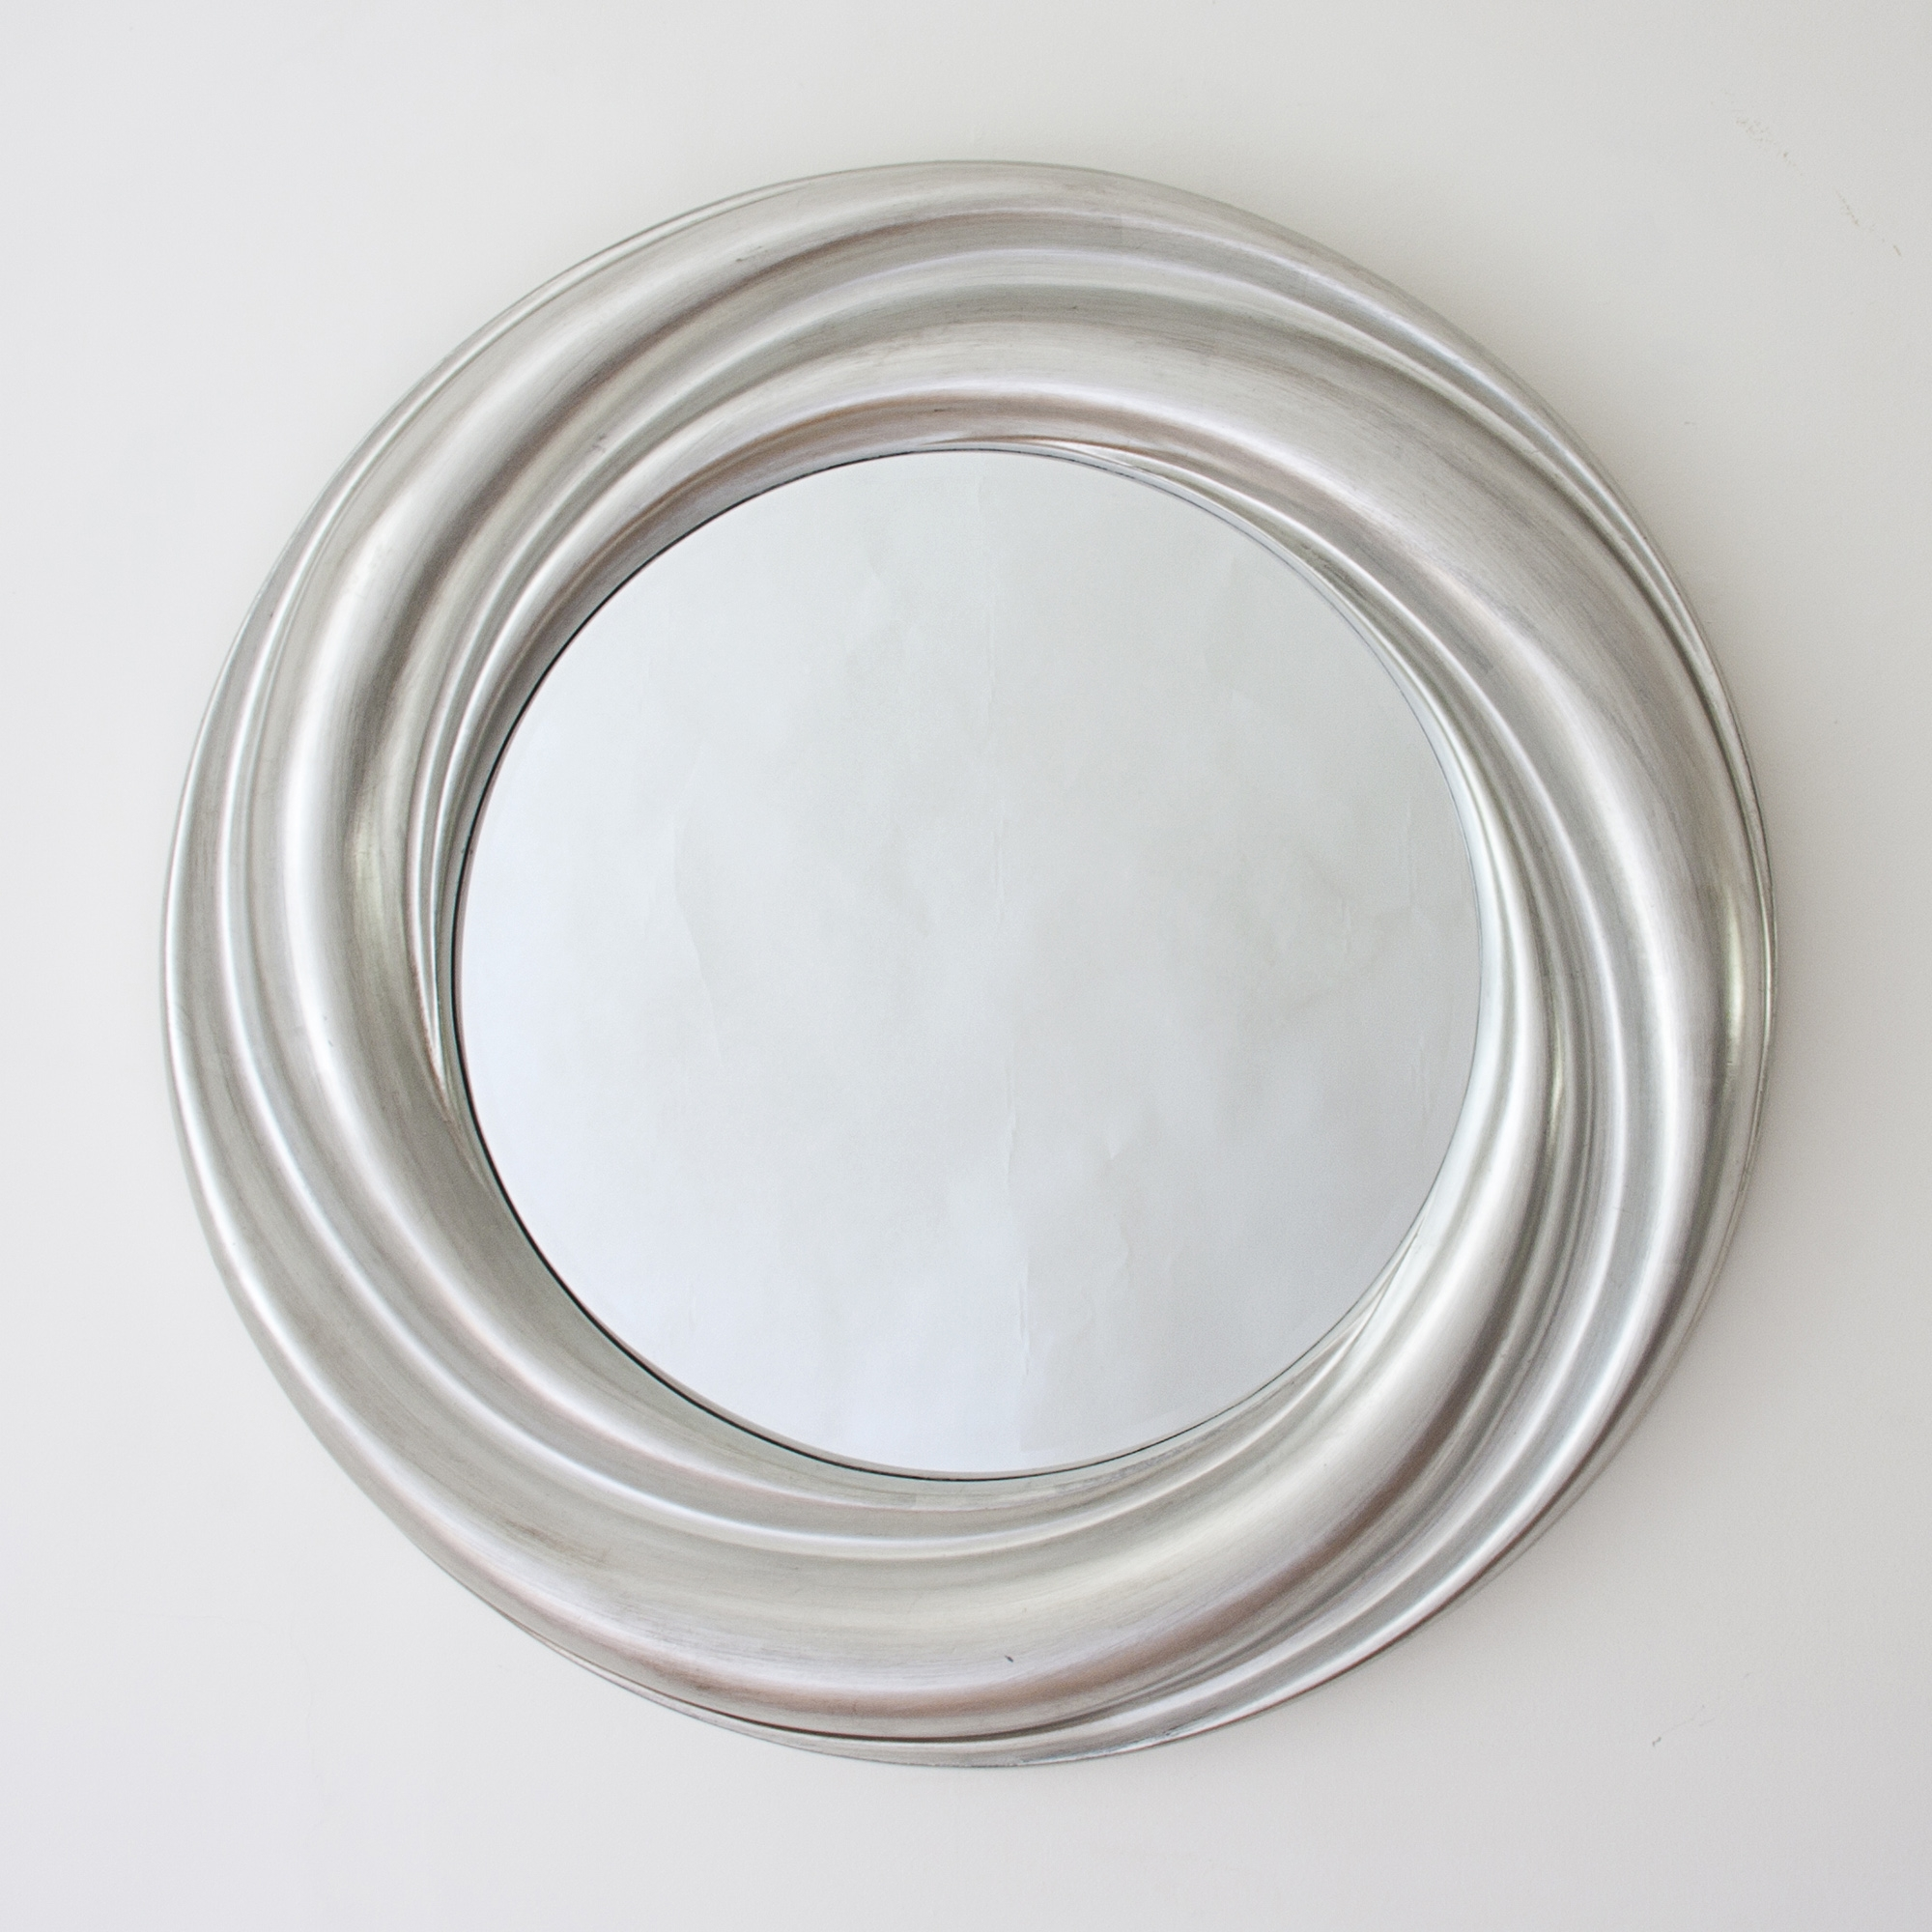 Bathroom Round Silver Mirror Pictures Decorations Inspiration In Contemporary Round Mirror (View 5 of 15)